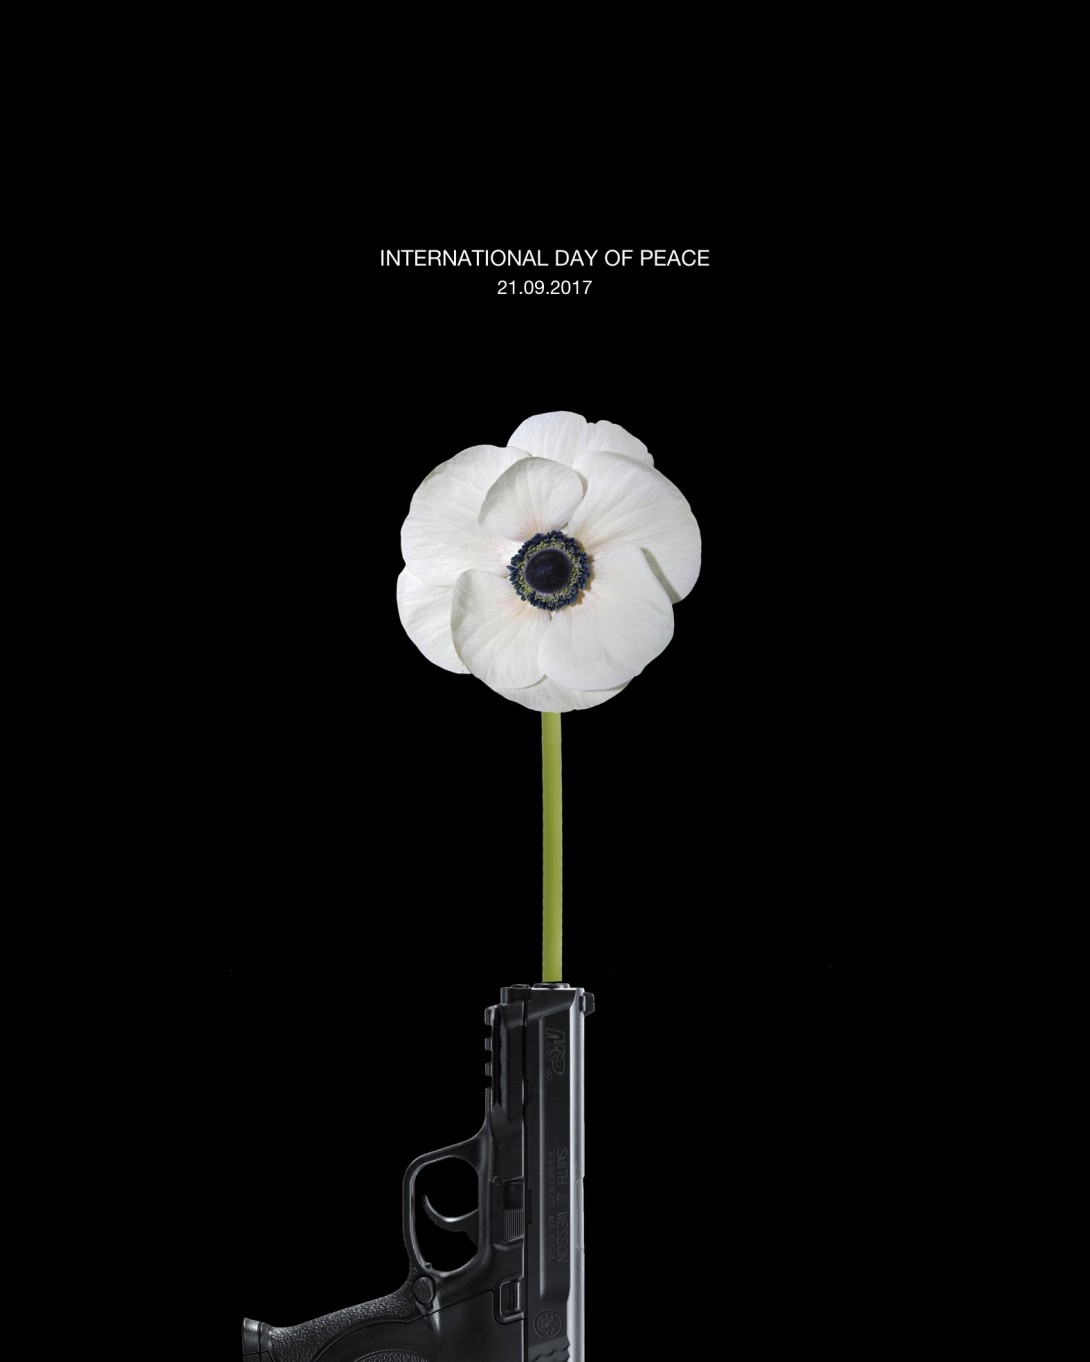 a poster idea for international day of peace - a gun used as a vase for a poppy